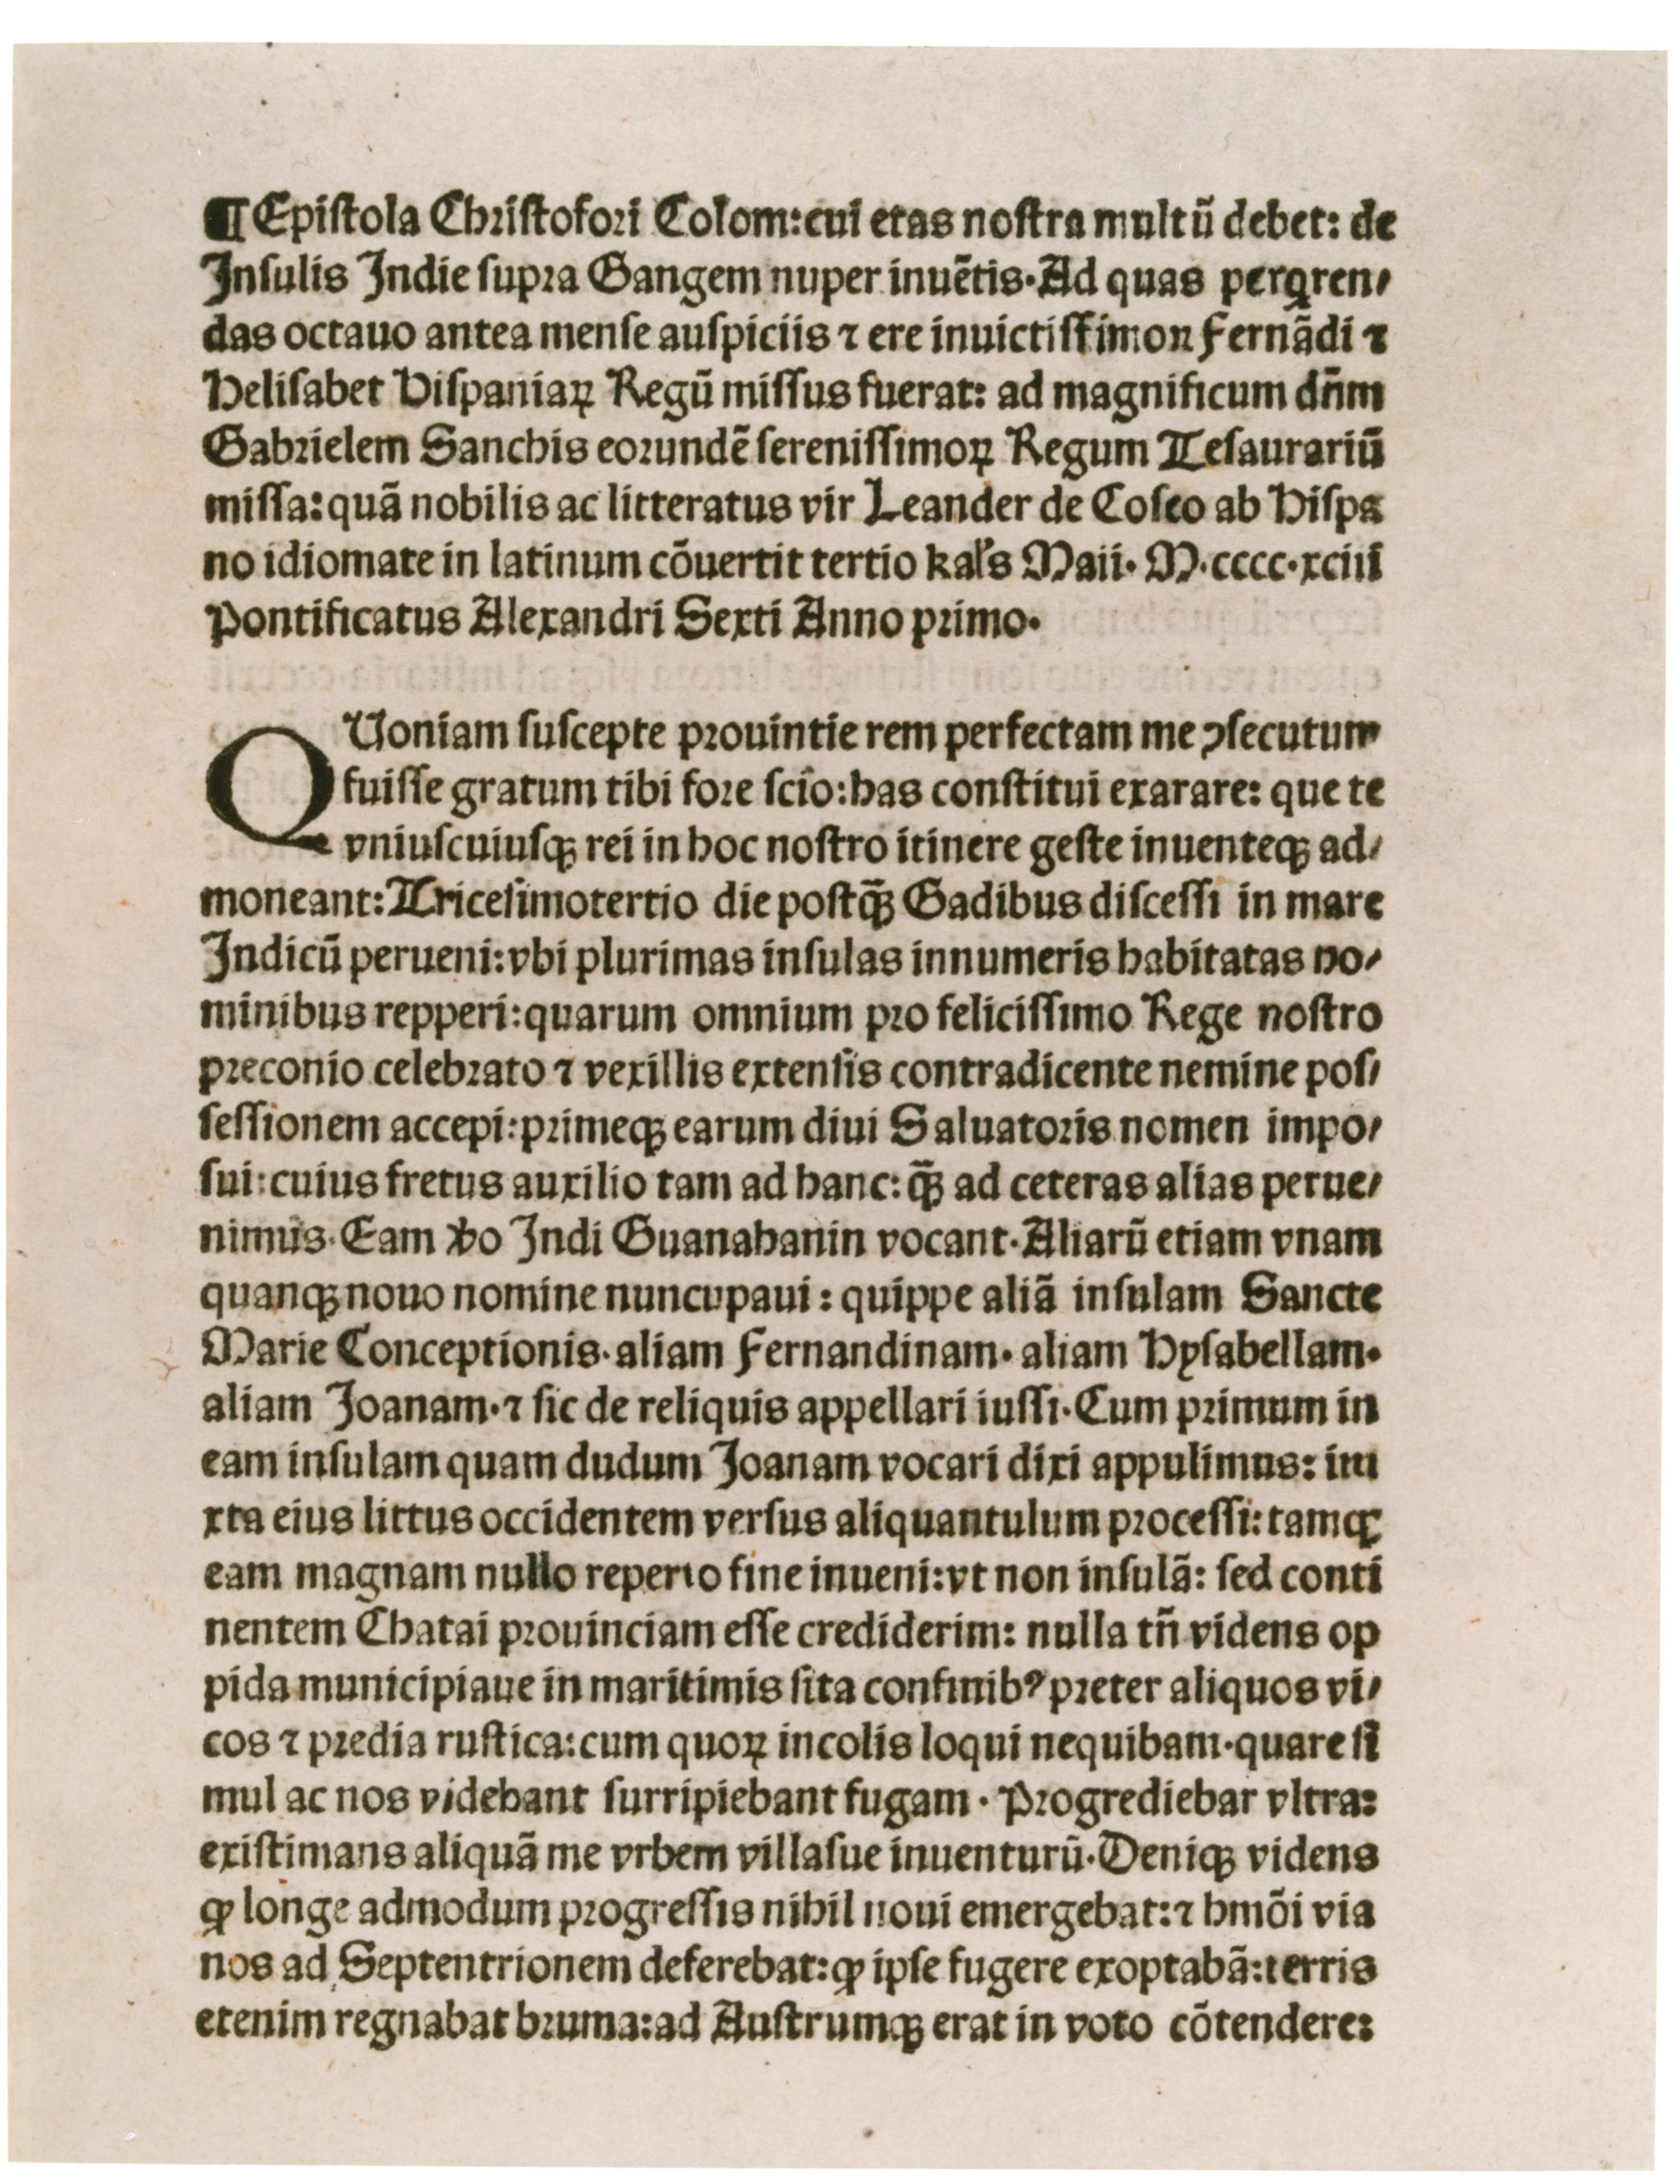 columbus letter of new world View notes - 3 christopher columbus letter to king ferdinand and queen isabella from hist 105 at purdue university christopher columbus letter christopher columbus explored the new world from 1492.